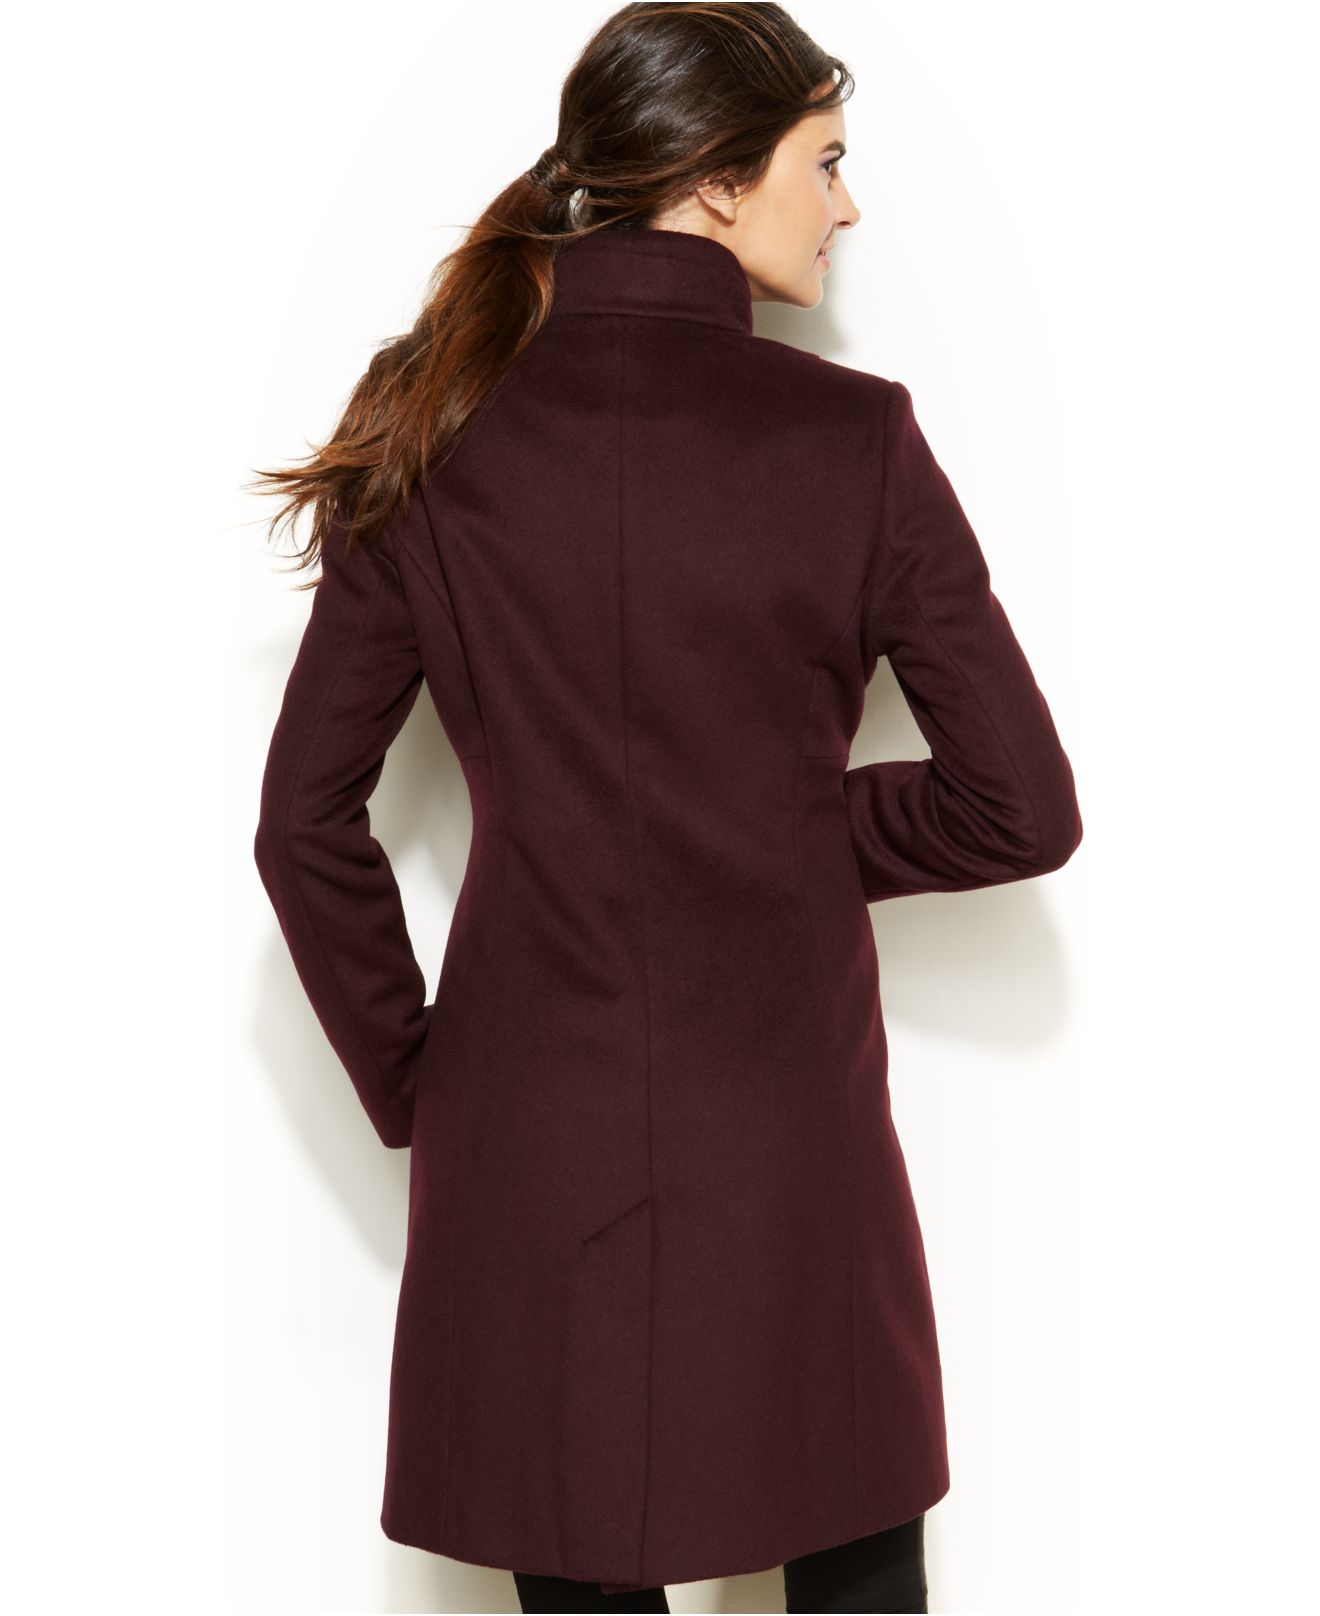 Find great deals on eBay for petite wool coat. Shop with confidence.